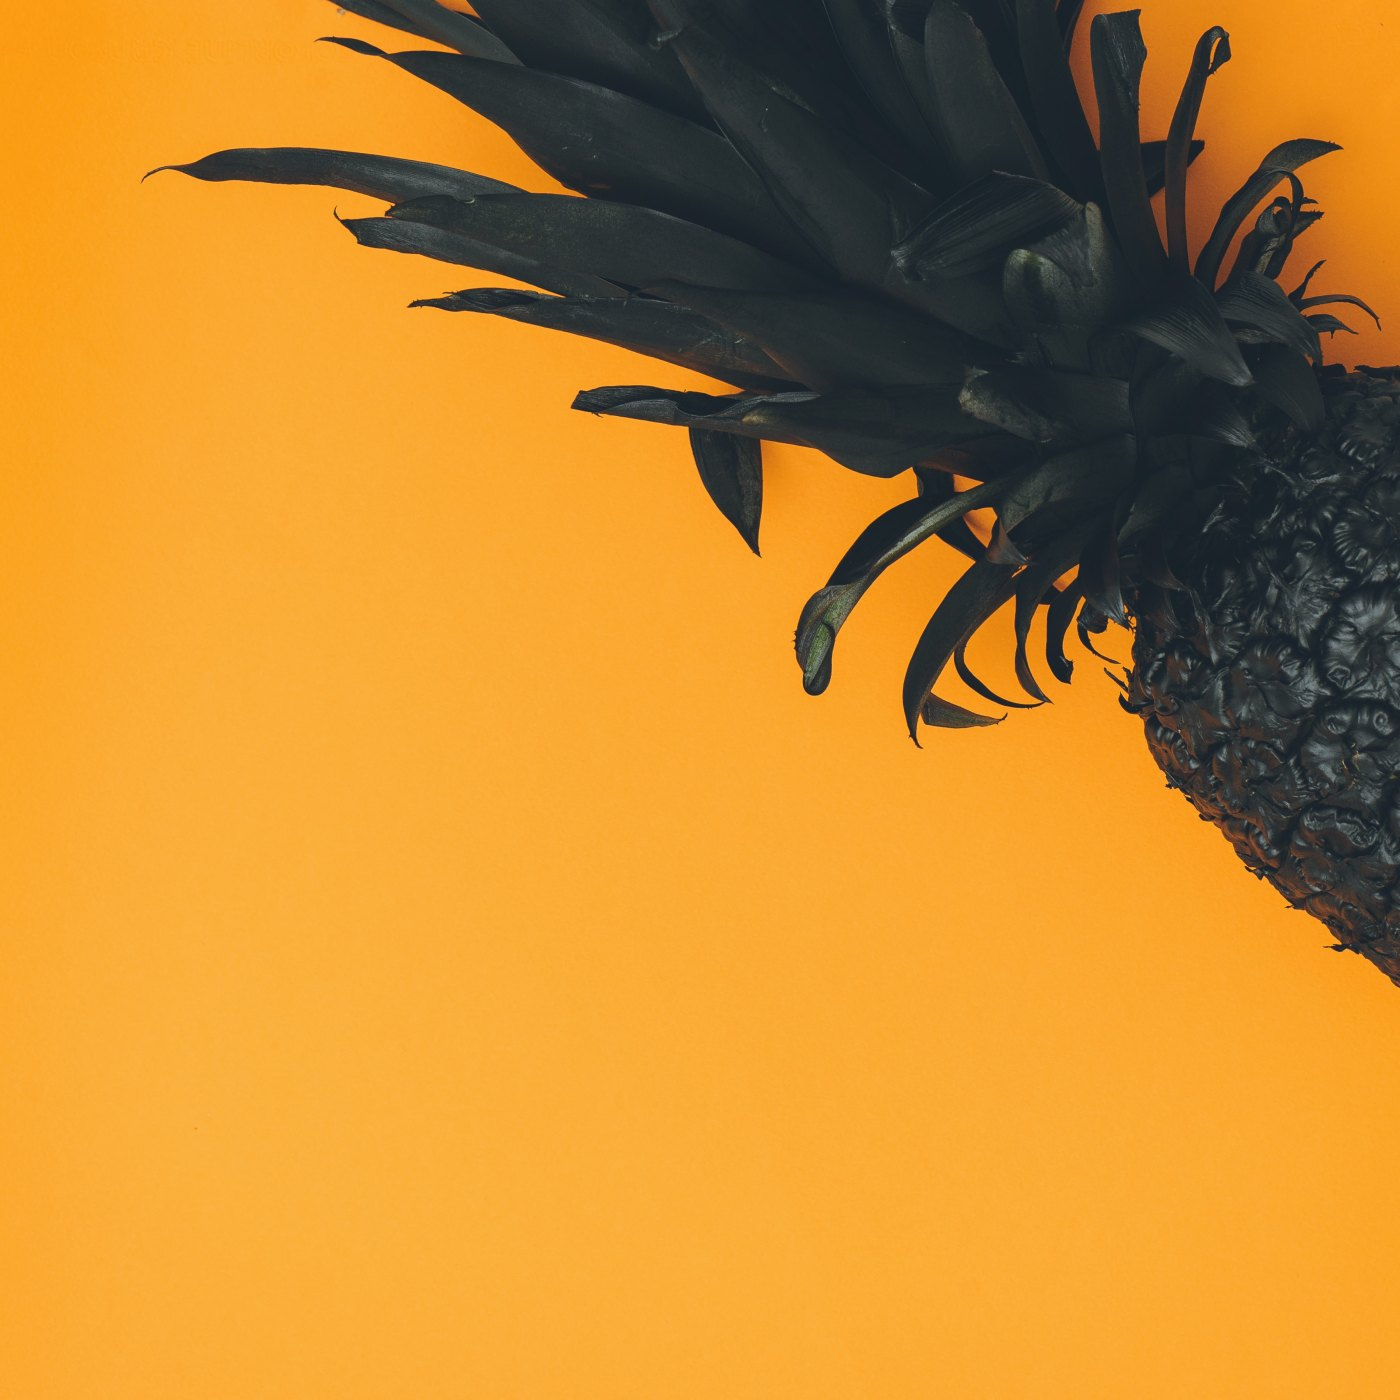 pineapple-supply-co-378132-unsplash